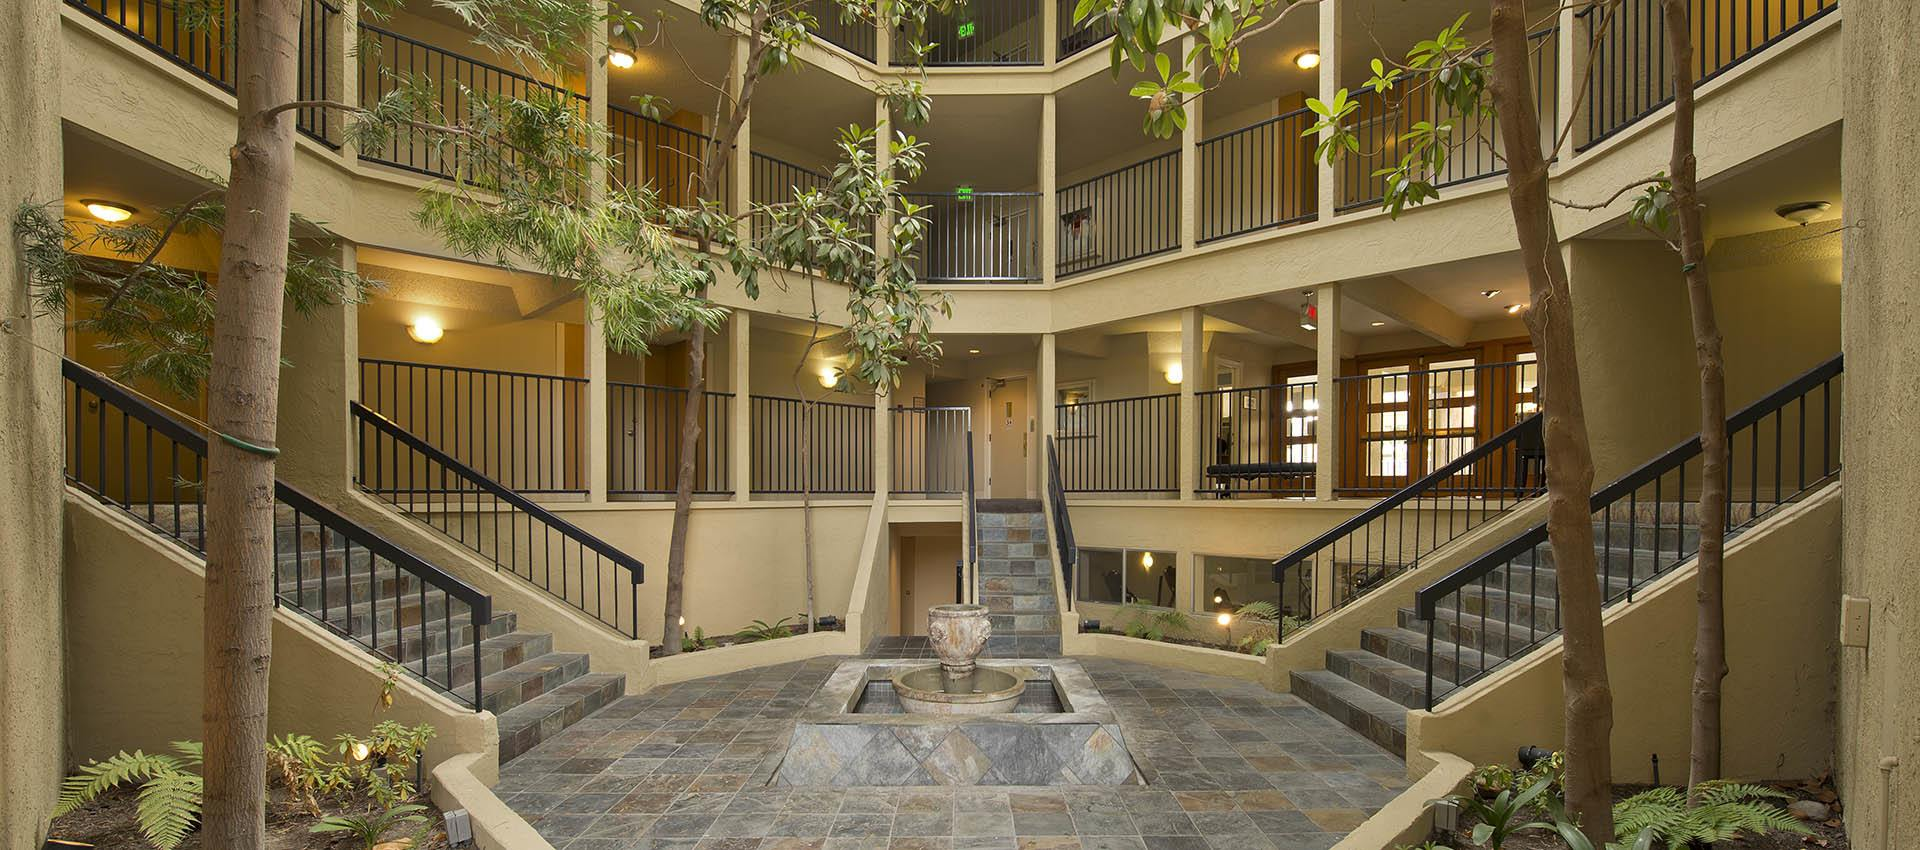 Interior atrium at Atrium Downtown in Walnut Creek, California